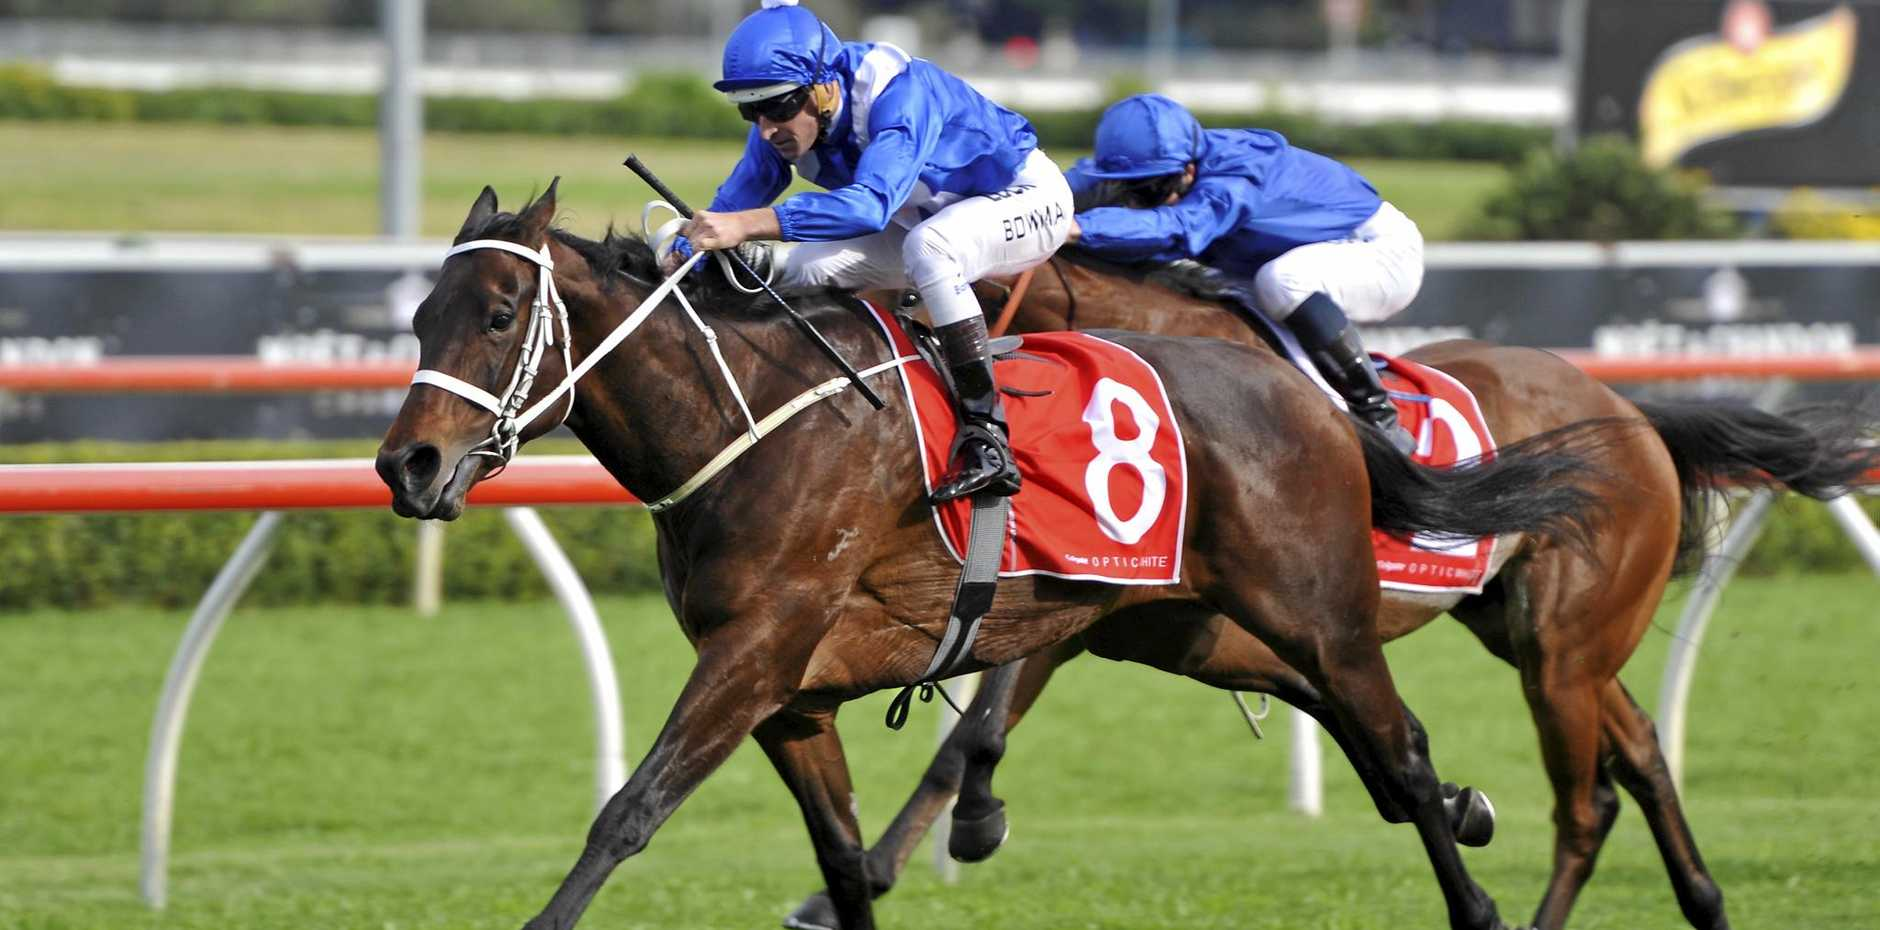 Champion mare Winx on the way to winning the Group 1 George Main Stakes at Randwick in September.